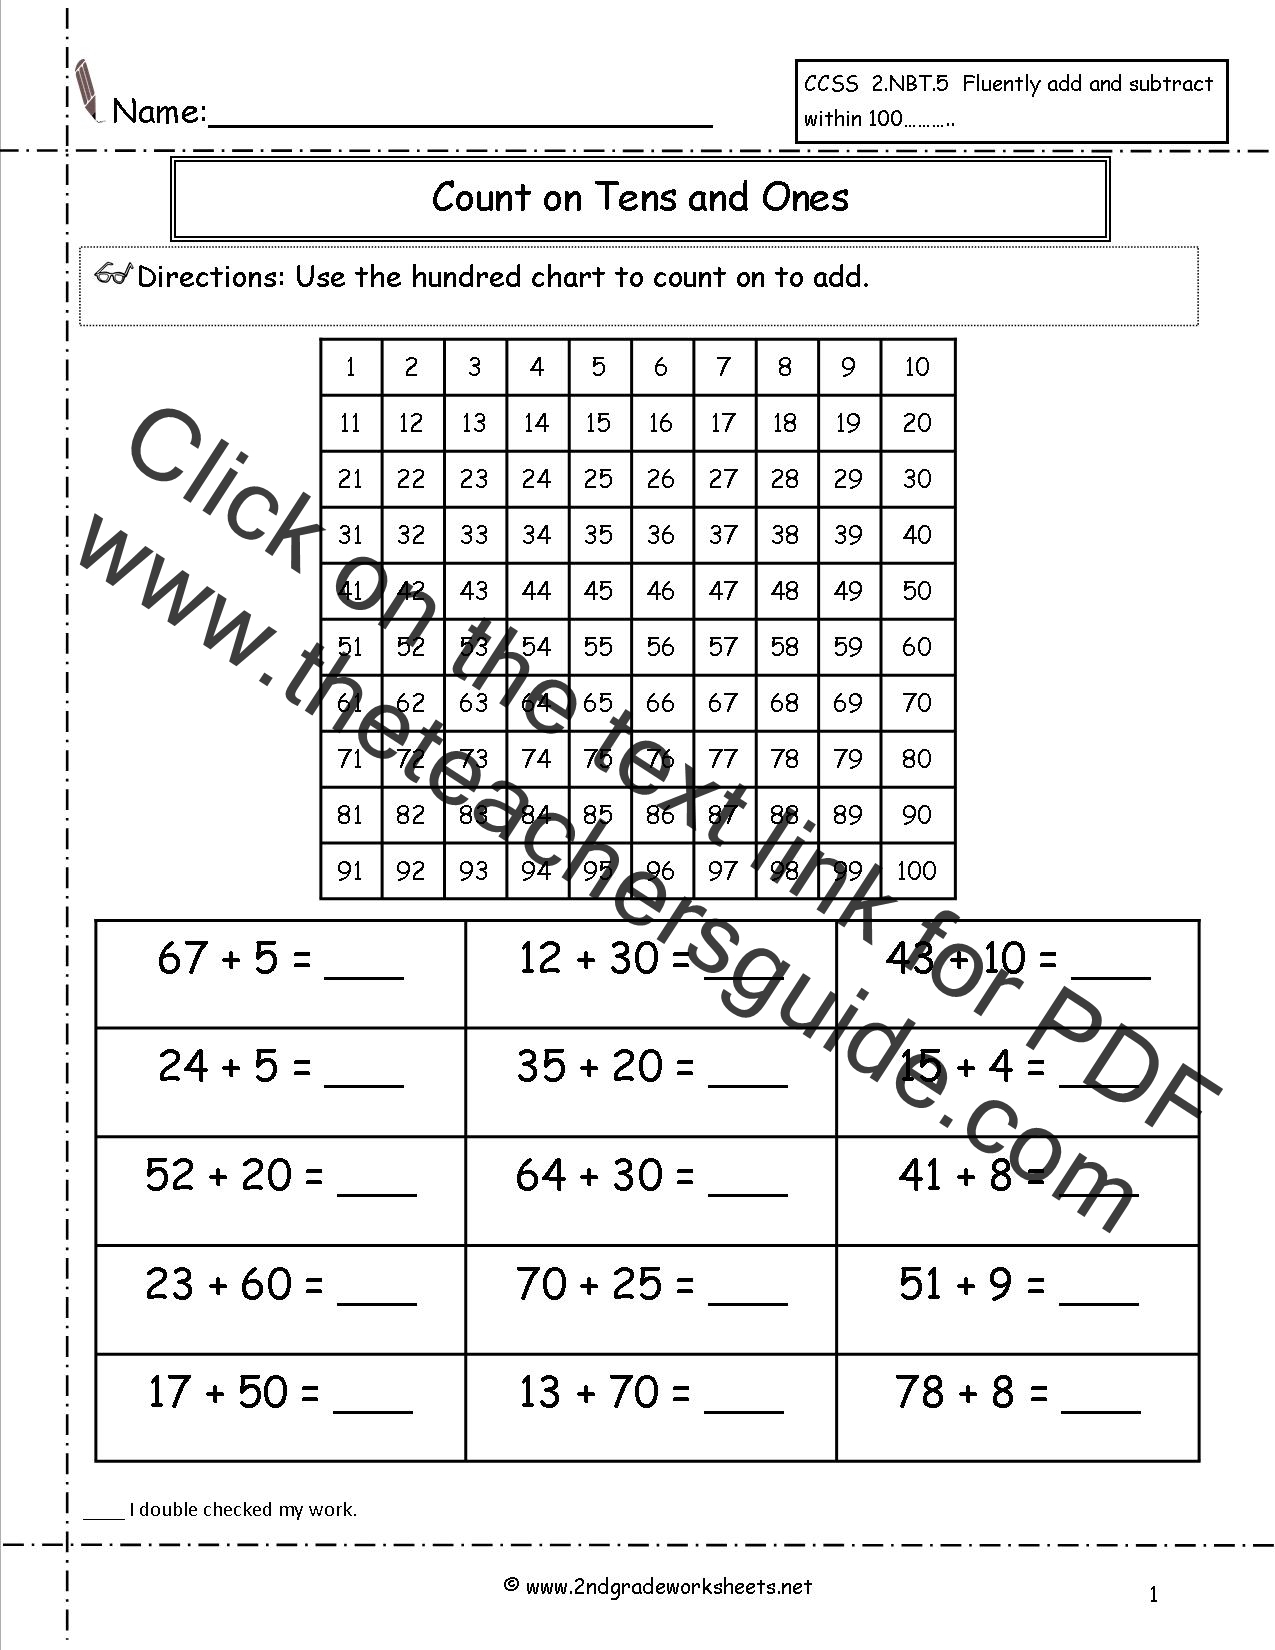 Printables Tens And Ones Worksheets two digit addition worksheets counting on ones and tens worksheet